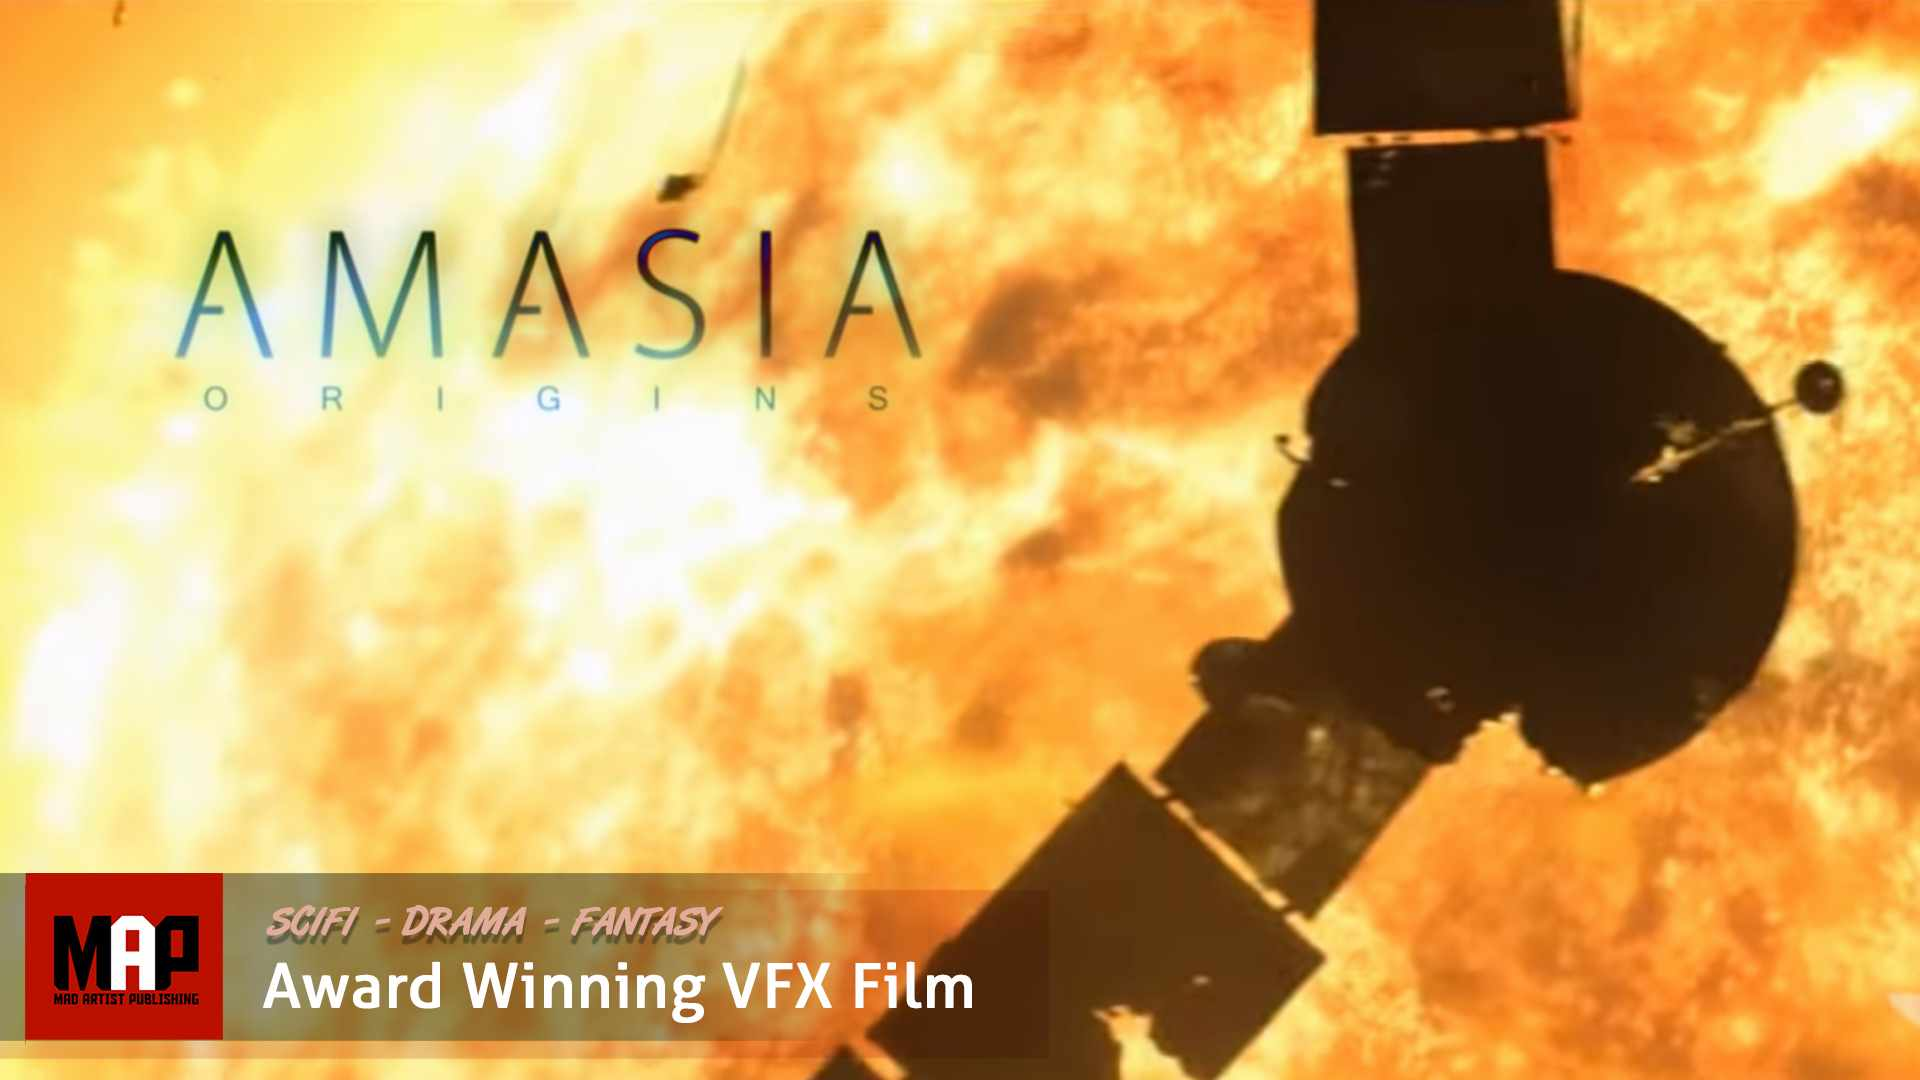 Sci-Fi Apocalypse CGI VFX Short Film ** AMASIA ** Remarkable Award Winning film by Artfx Team